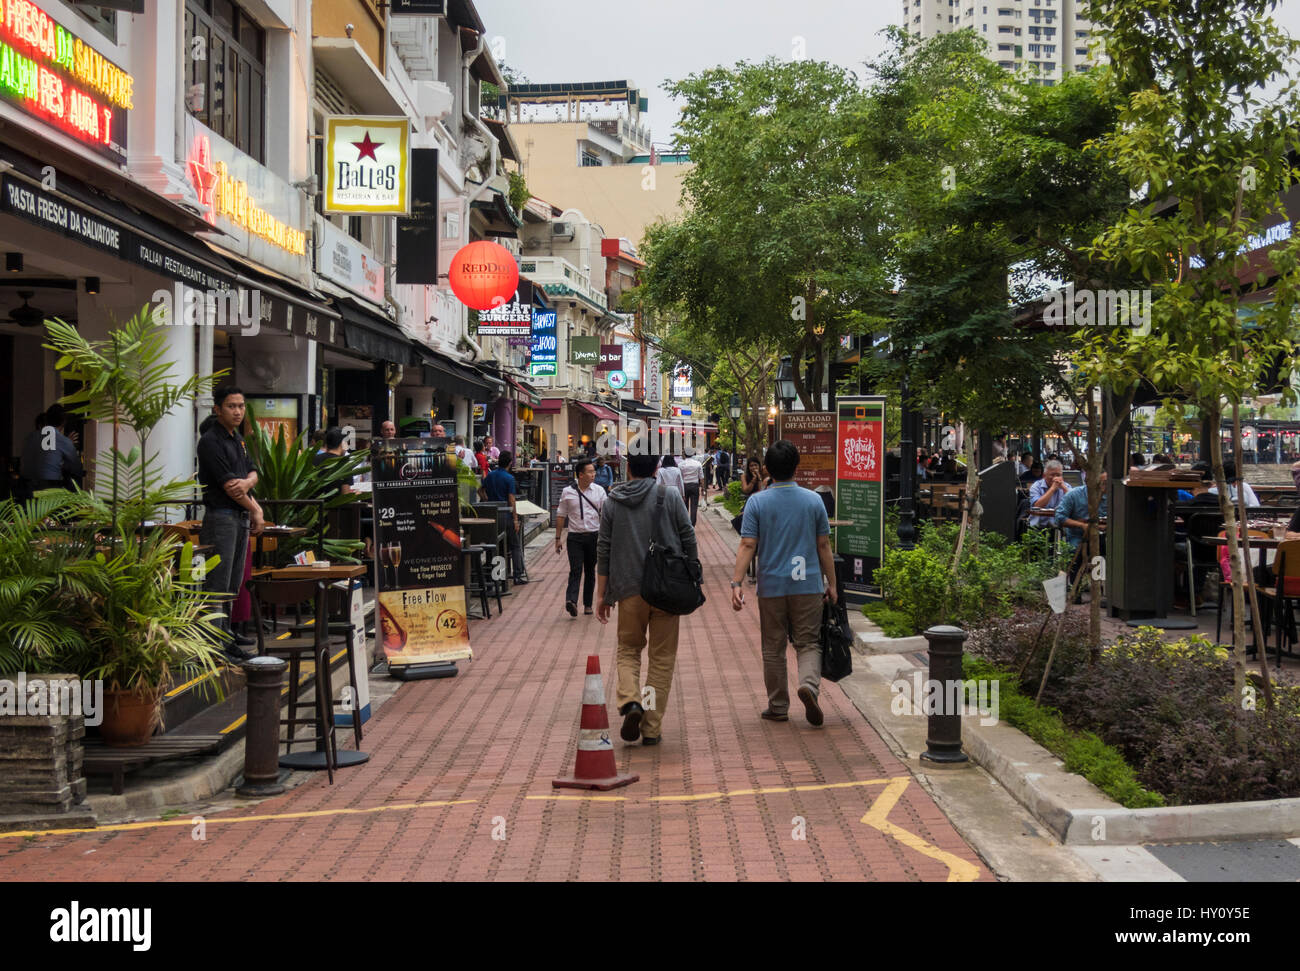 Pubs and restaurants along Boat Quay, Singapore - Stock Image